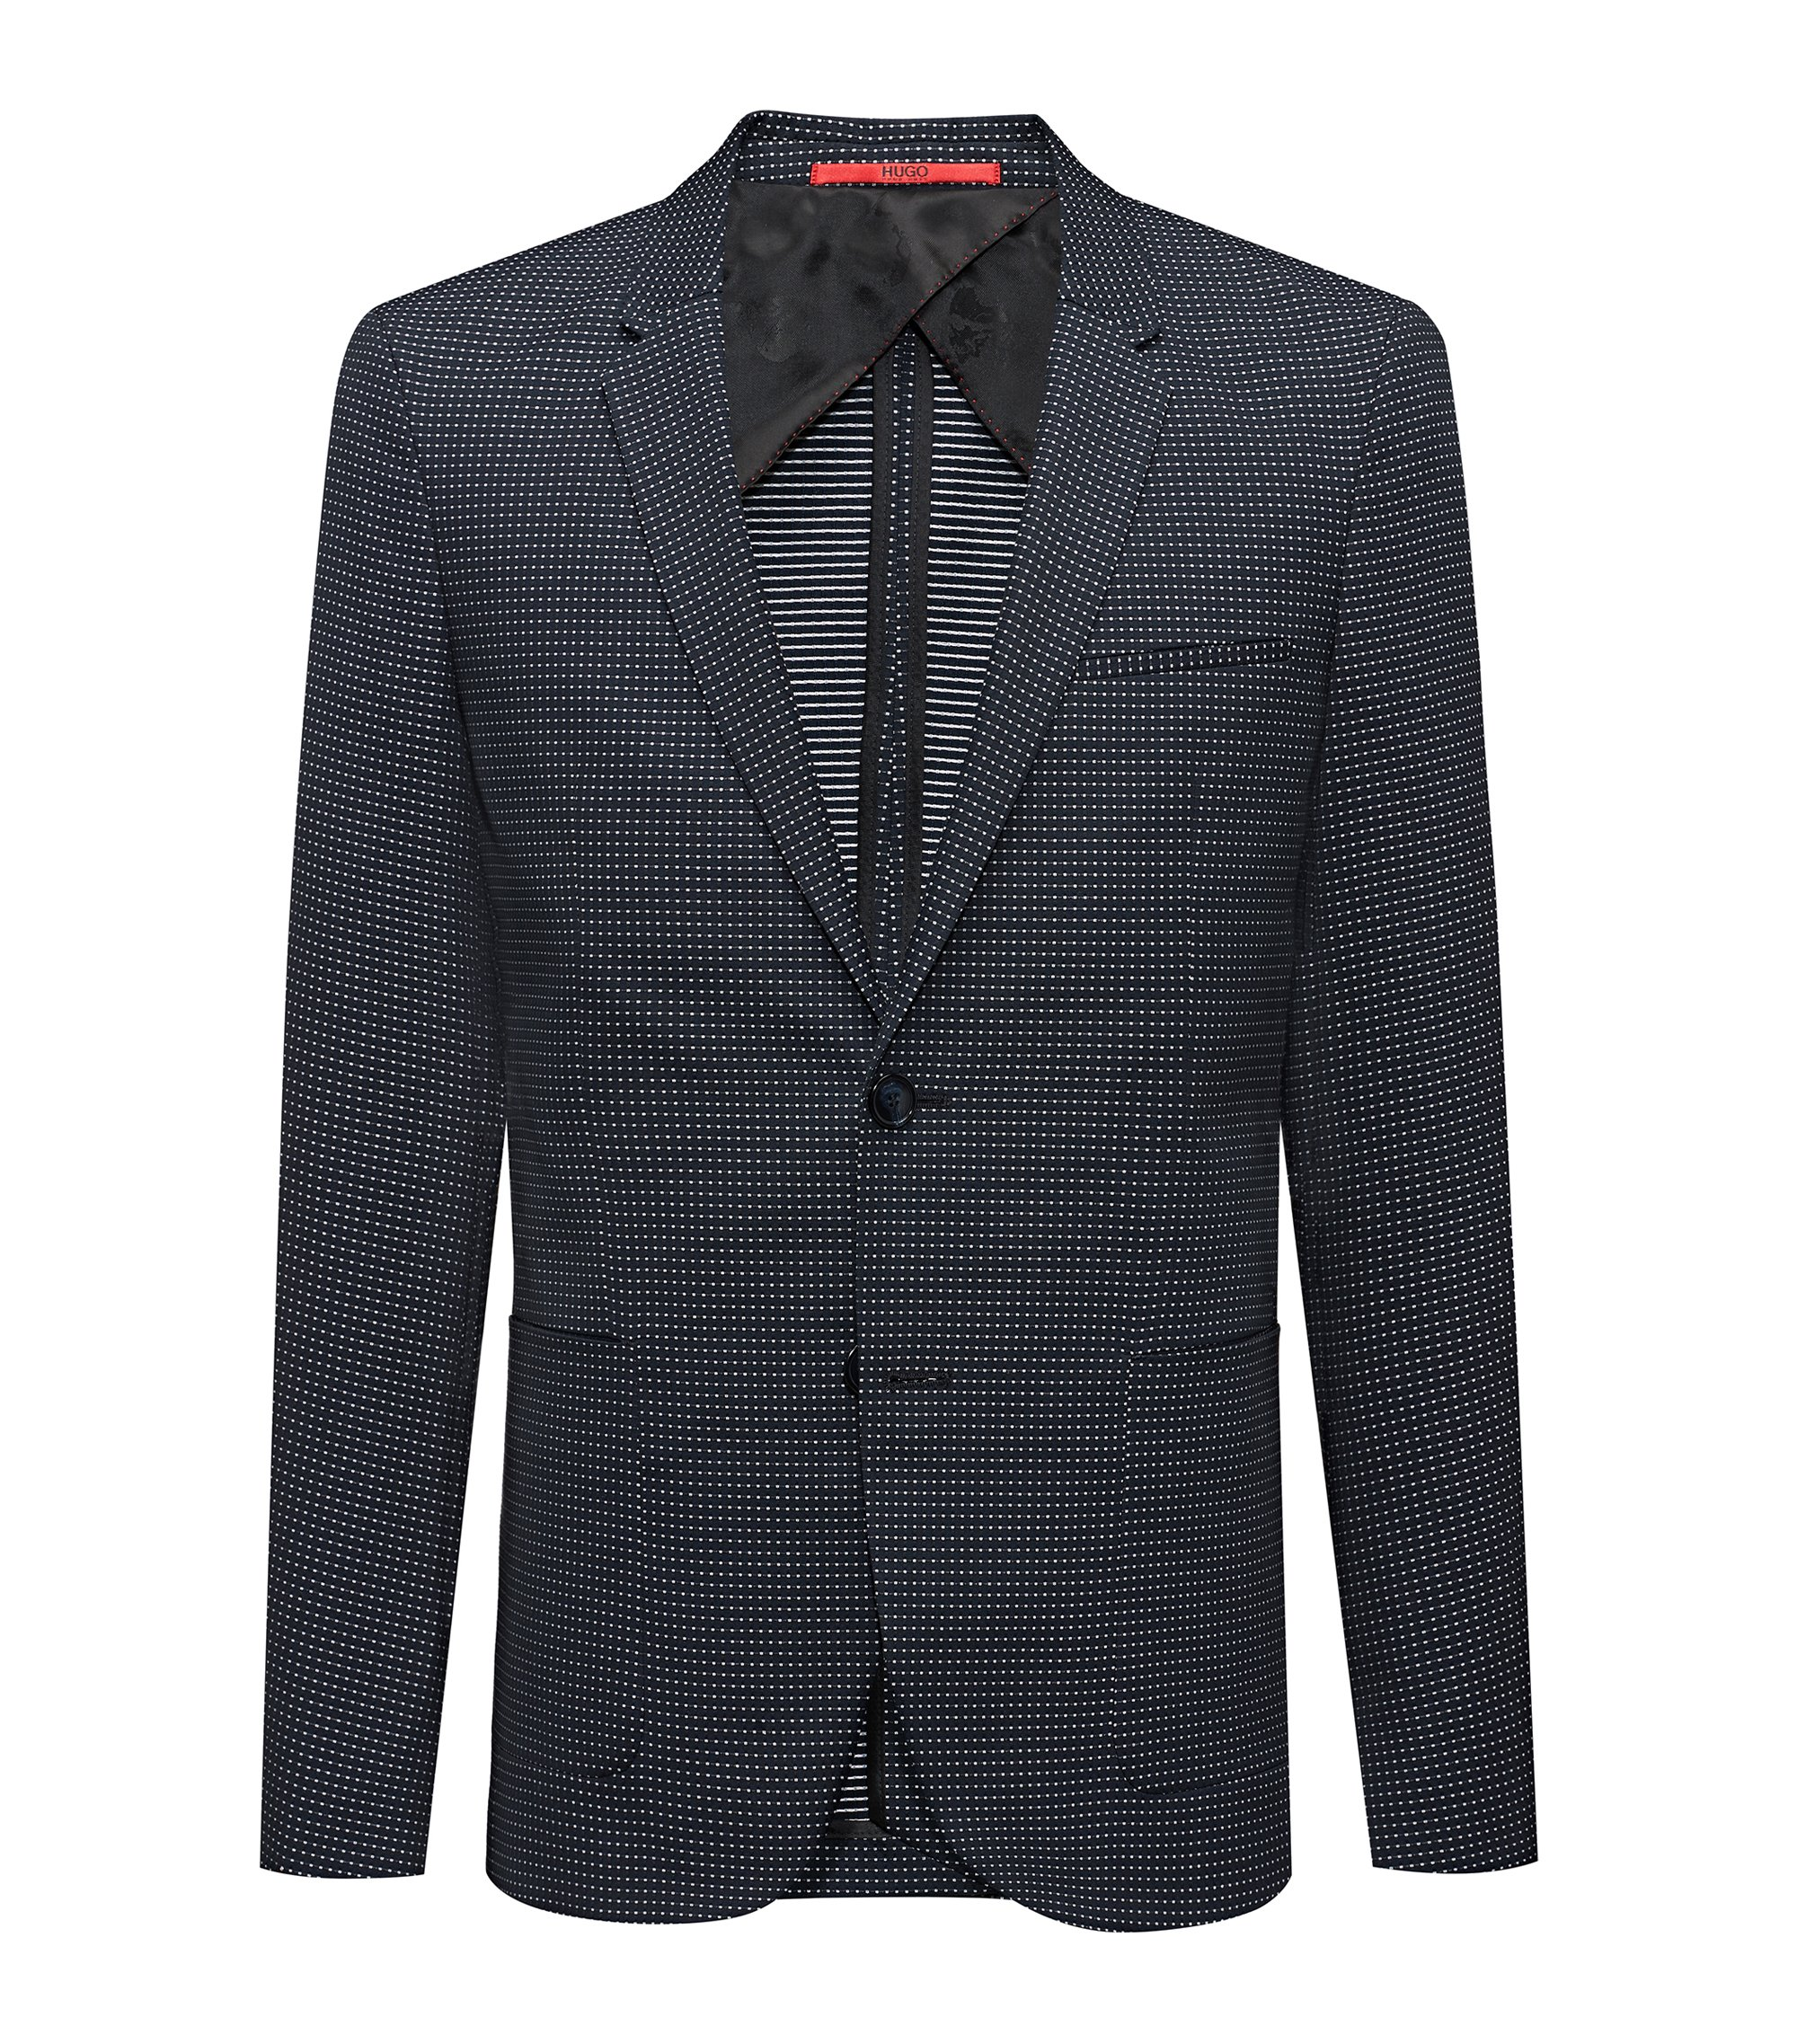 Extra-slim-fit micro-pattern jacket in a stretch cotton blend, Dark Blue